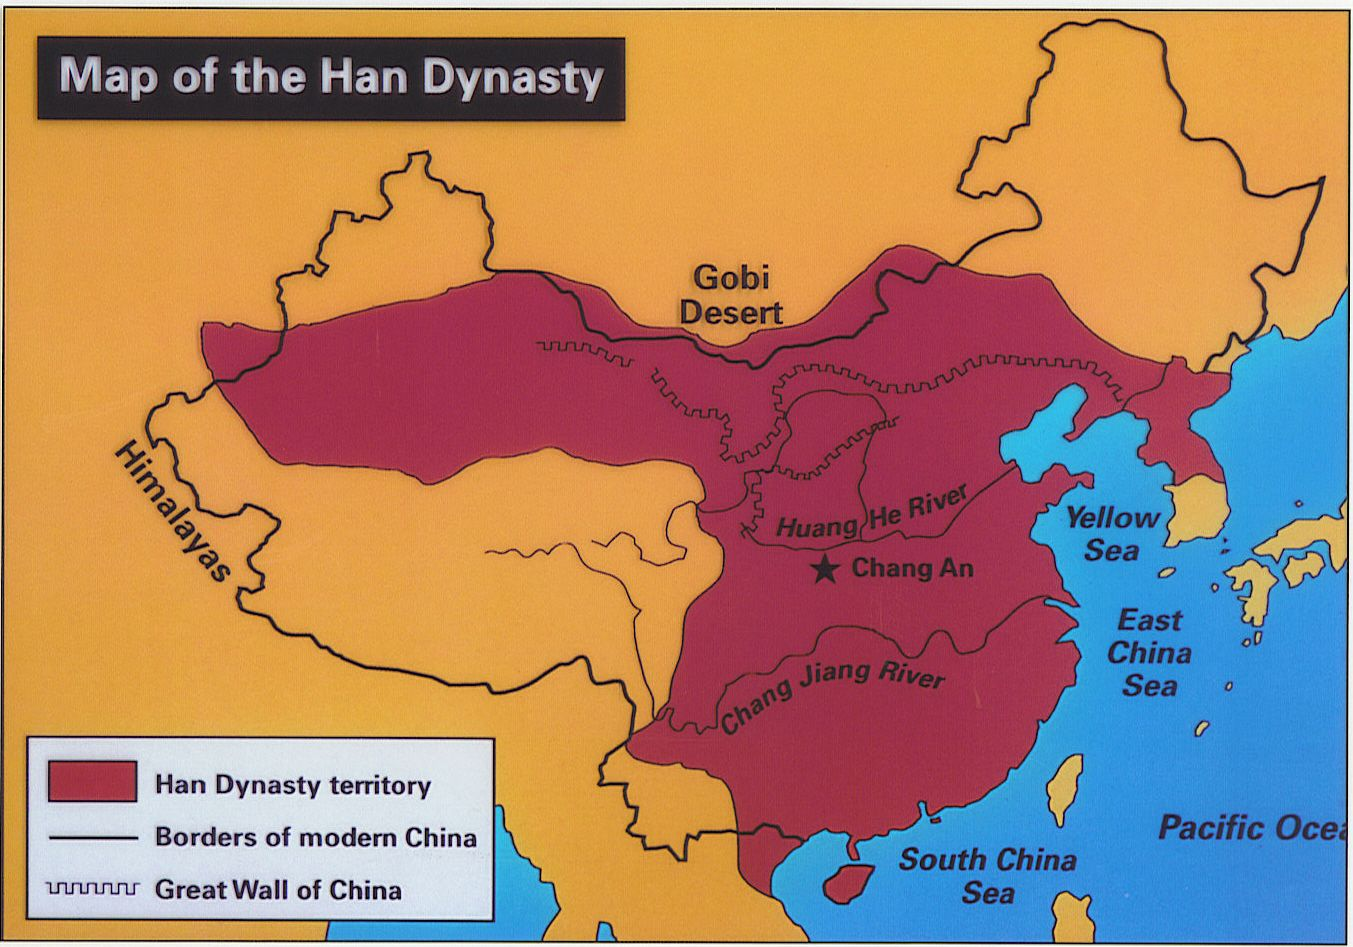 the roman empire and the han dynasty essay The roman empire and the han dynasty essay sample the roman empire and the han dynasty were two of the most influential civilizations of all time their government, cultural ways of life, and philosophies are still used and widely practiced in today's world.